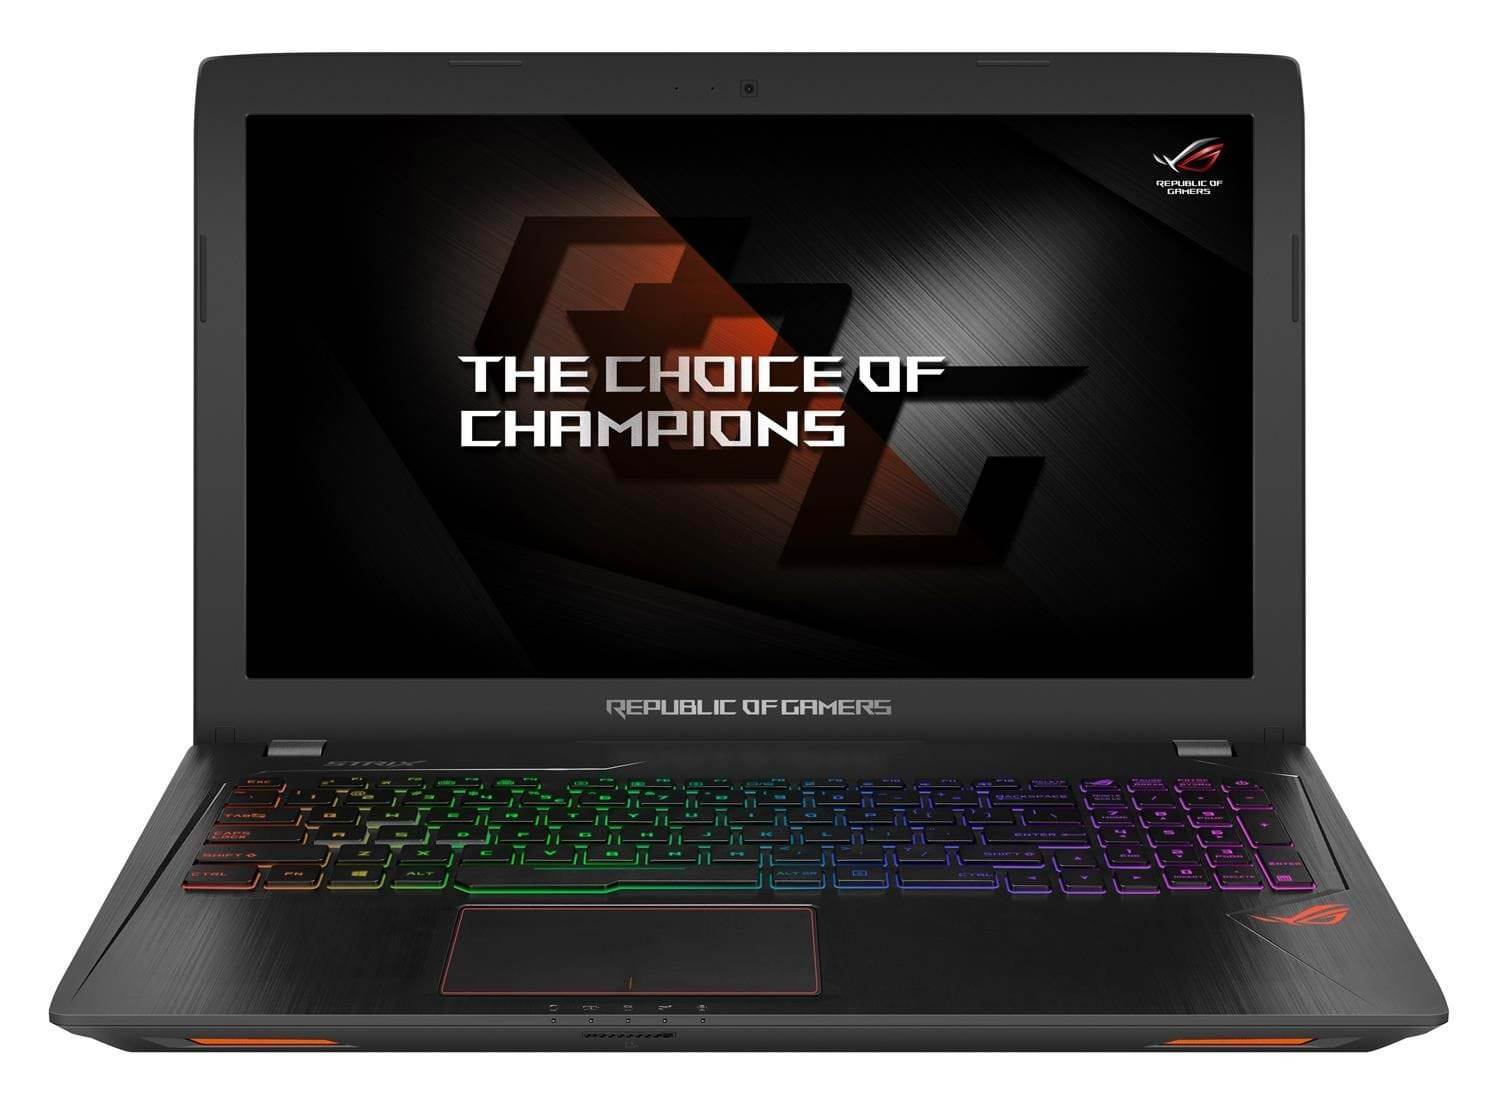 لپ تاپ استوک ایسوس مدل ASUS Rog Strix GL553VD با مشخصات i7-7th-8GB-128GB-SSD-1TB-HDD-2GB-intel-HD-630-4GB GTX 1050 Tilaptop-stock-asus-model-ROG-STRIX-GL553VD-i7-8GB-128GB-SSD-1TB-HDD-4GB-1050Ti